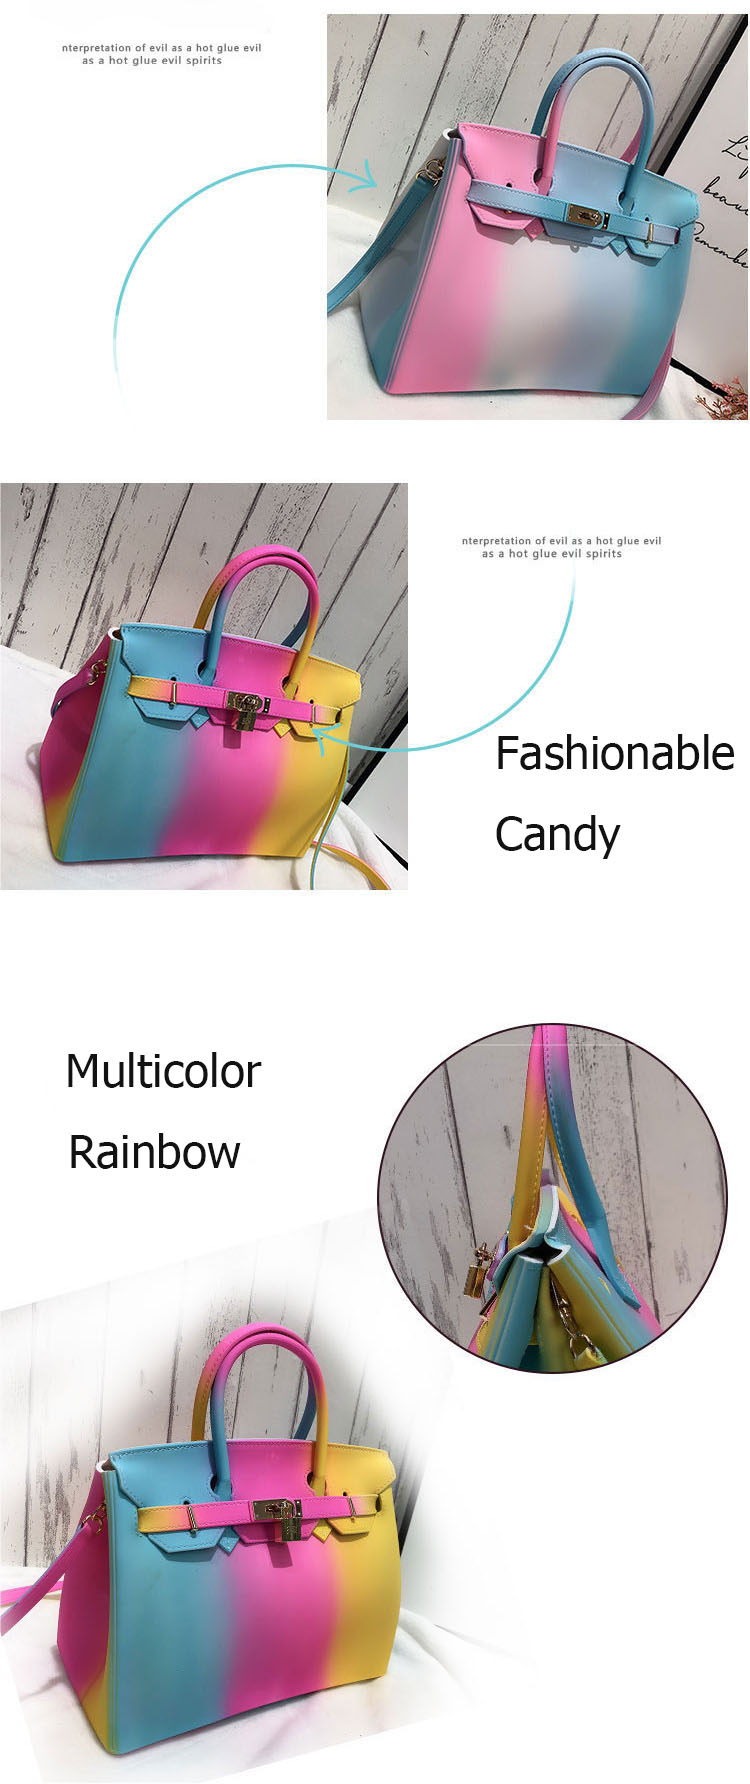 blue jelly purse pvc clear bag satchel handbags for work baginning pvcbag clearbag clearhandbag clearpurses clea satchel handbags jelly purse clear bags pinterest